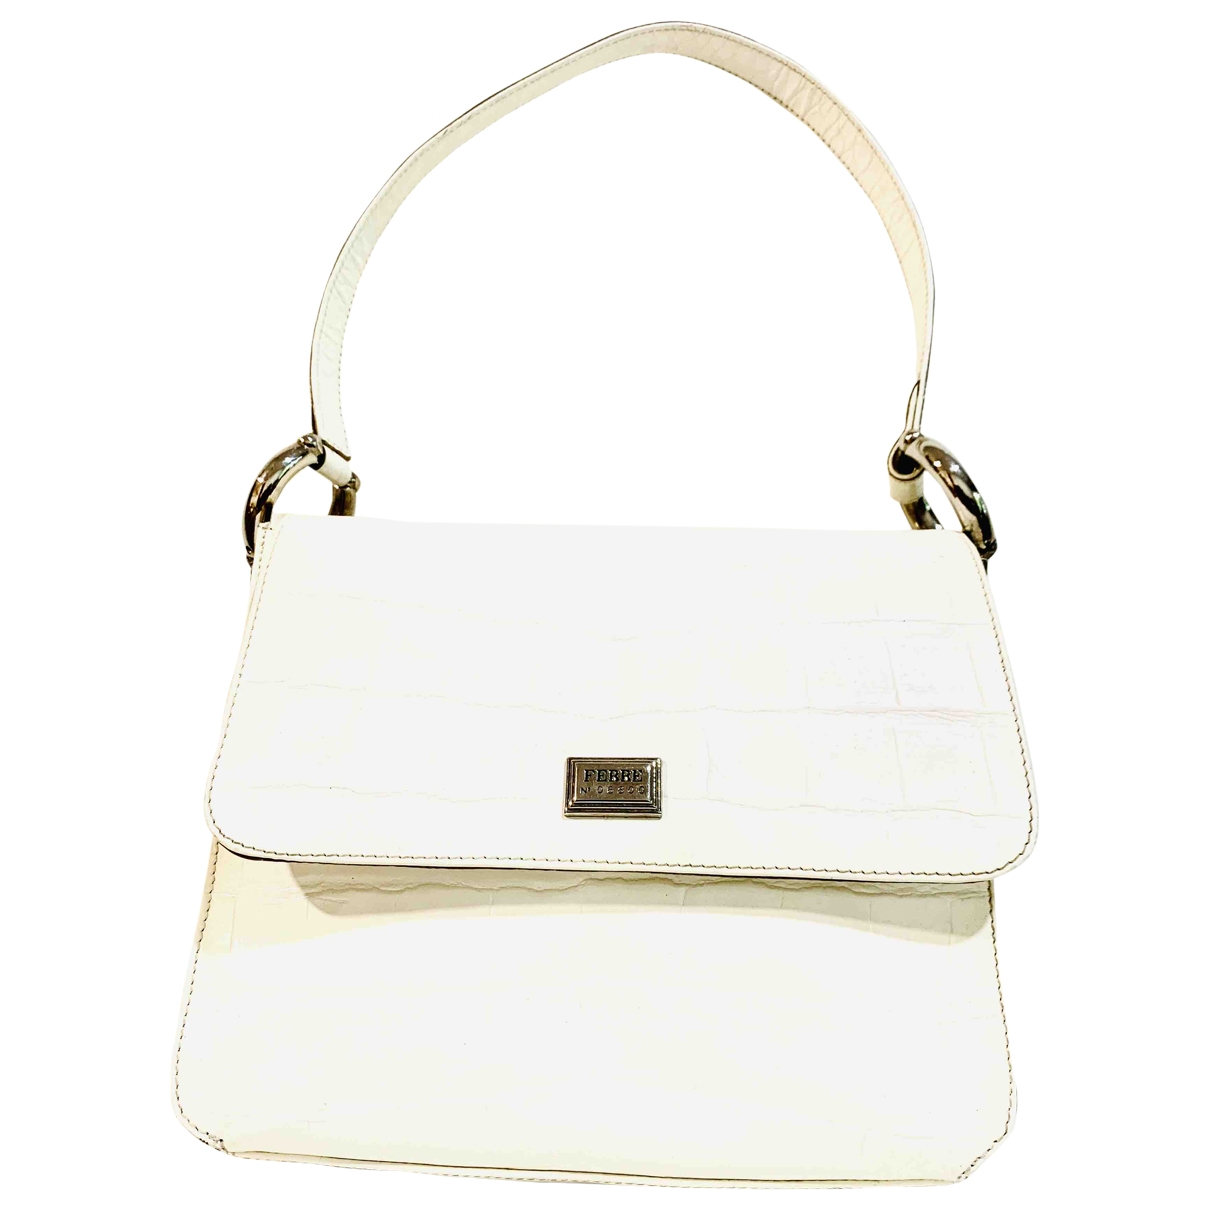 Gianfranco Ferré \N White Leather handbag for Women \N